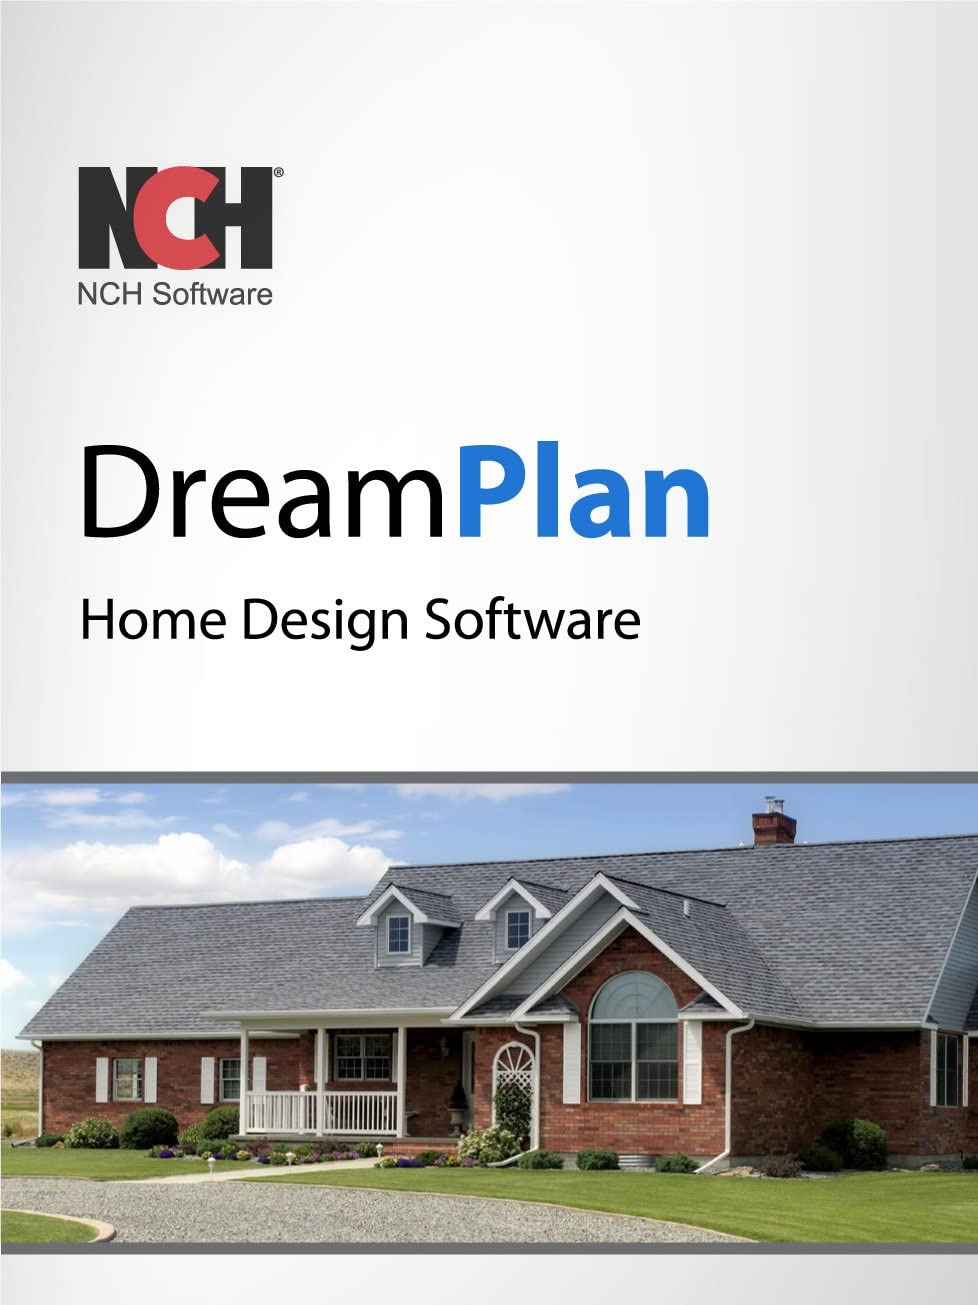 House Planning software Free Awesome Dreamplan Home Design and Landscaping software Free for Windows [pc Download]